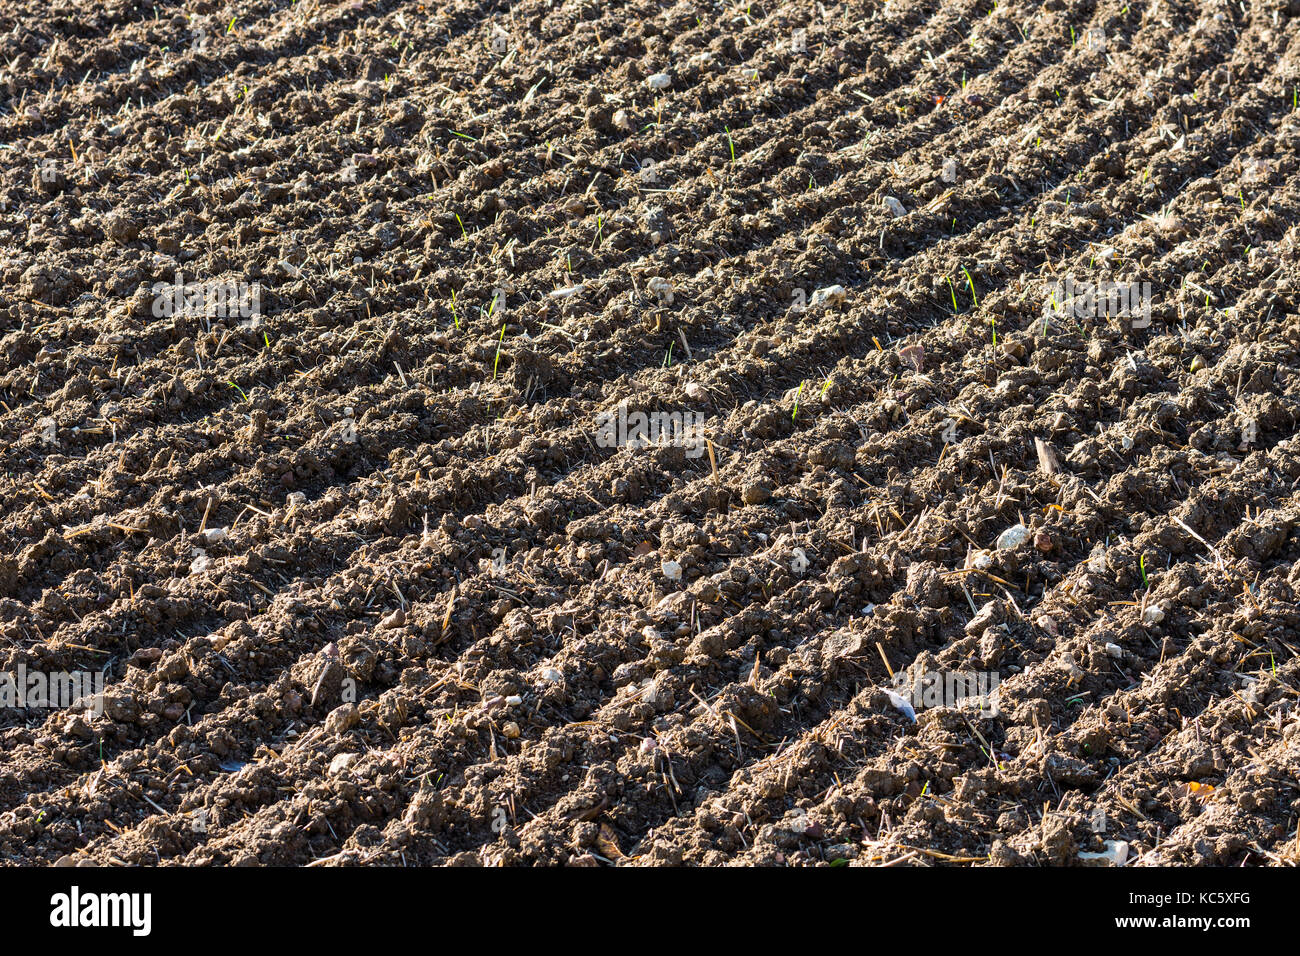 Tilled farmland, France. - Stock Image